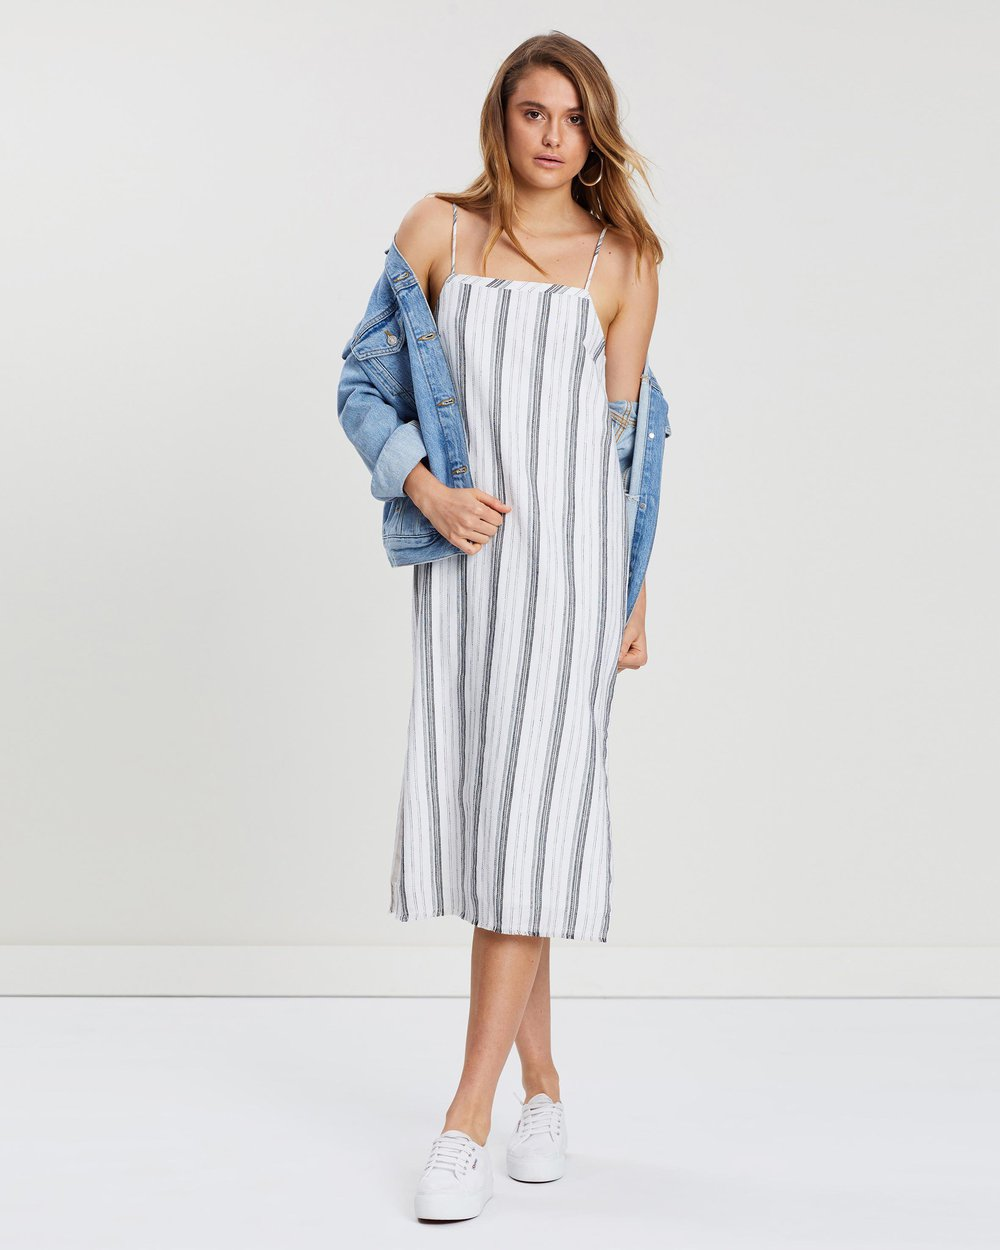 Brooke Linen Stripe Dress by Nude Lucy